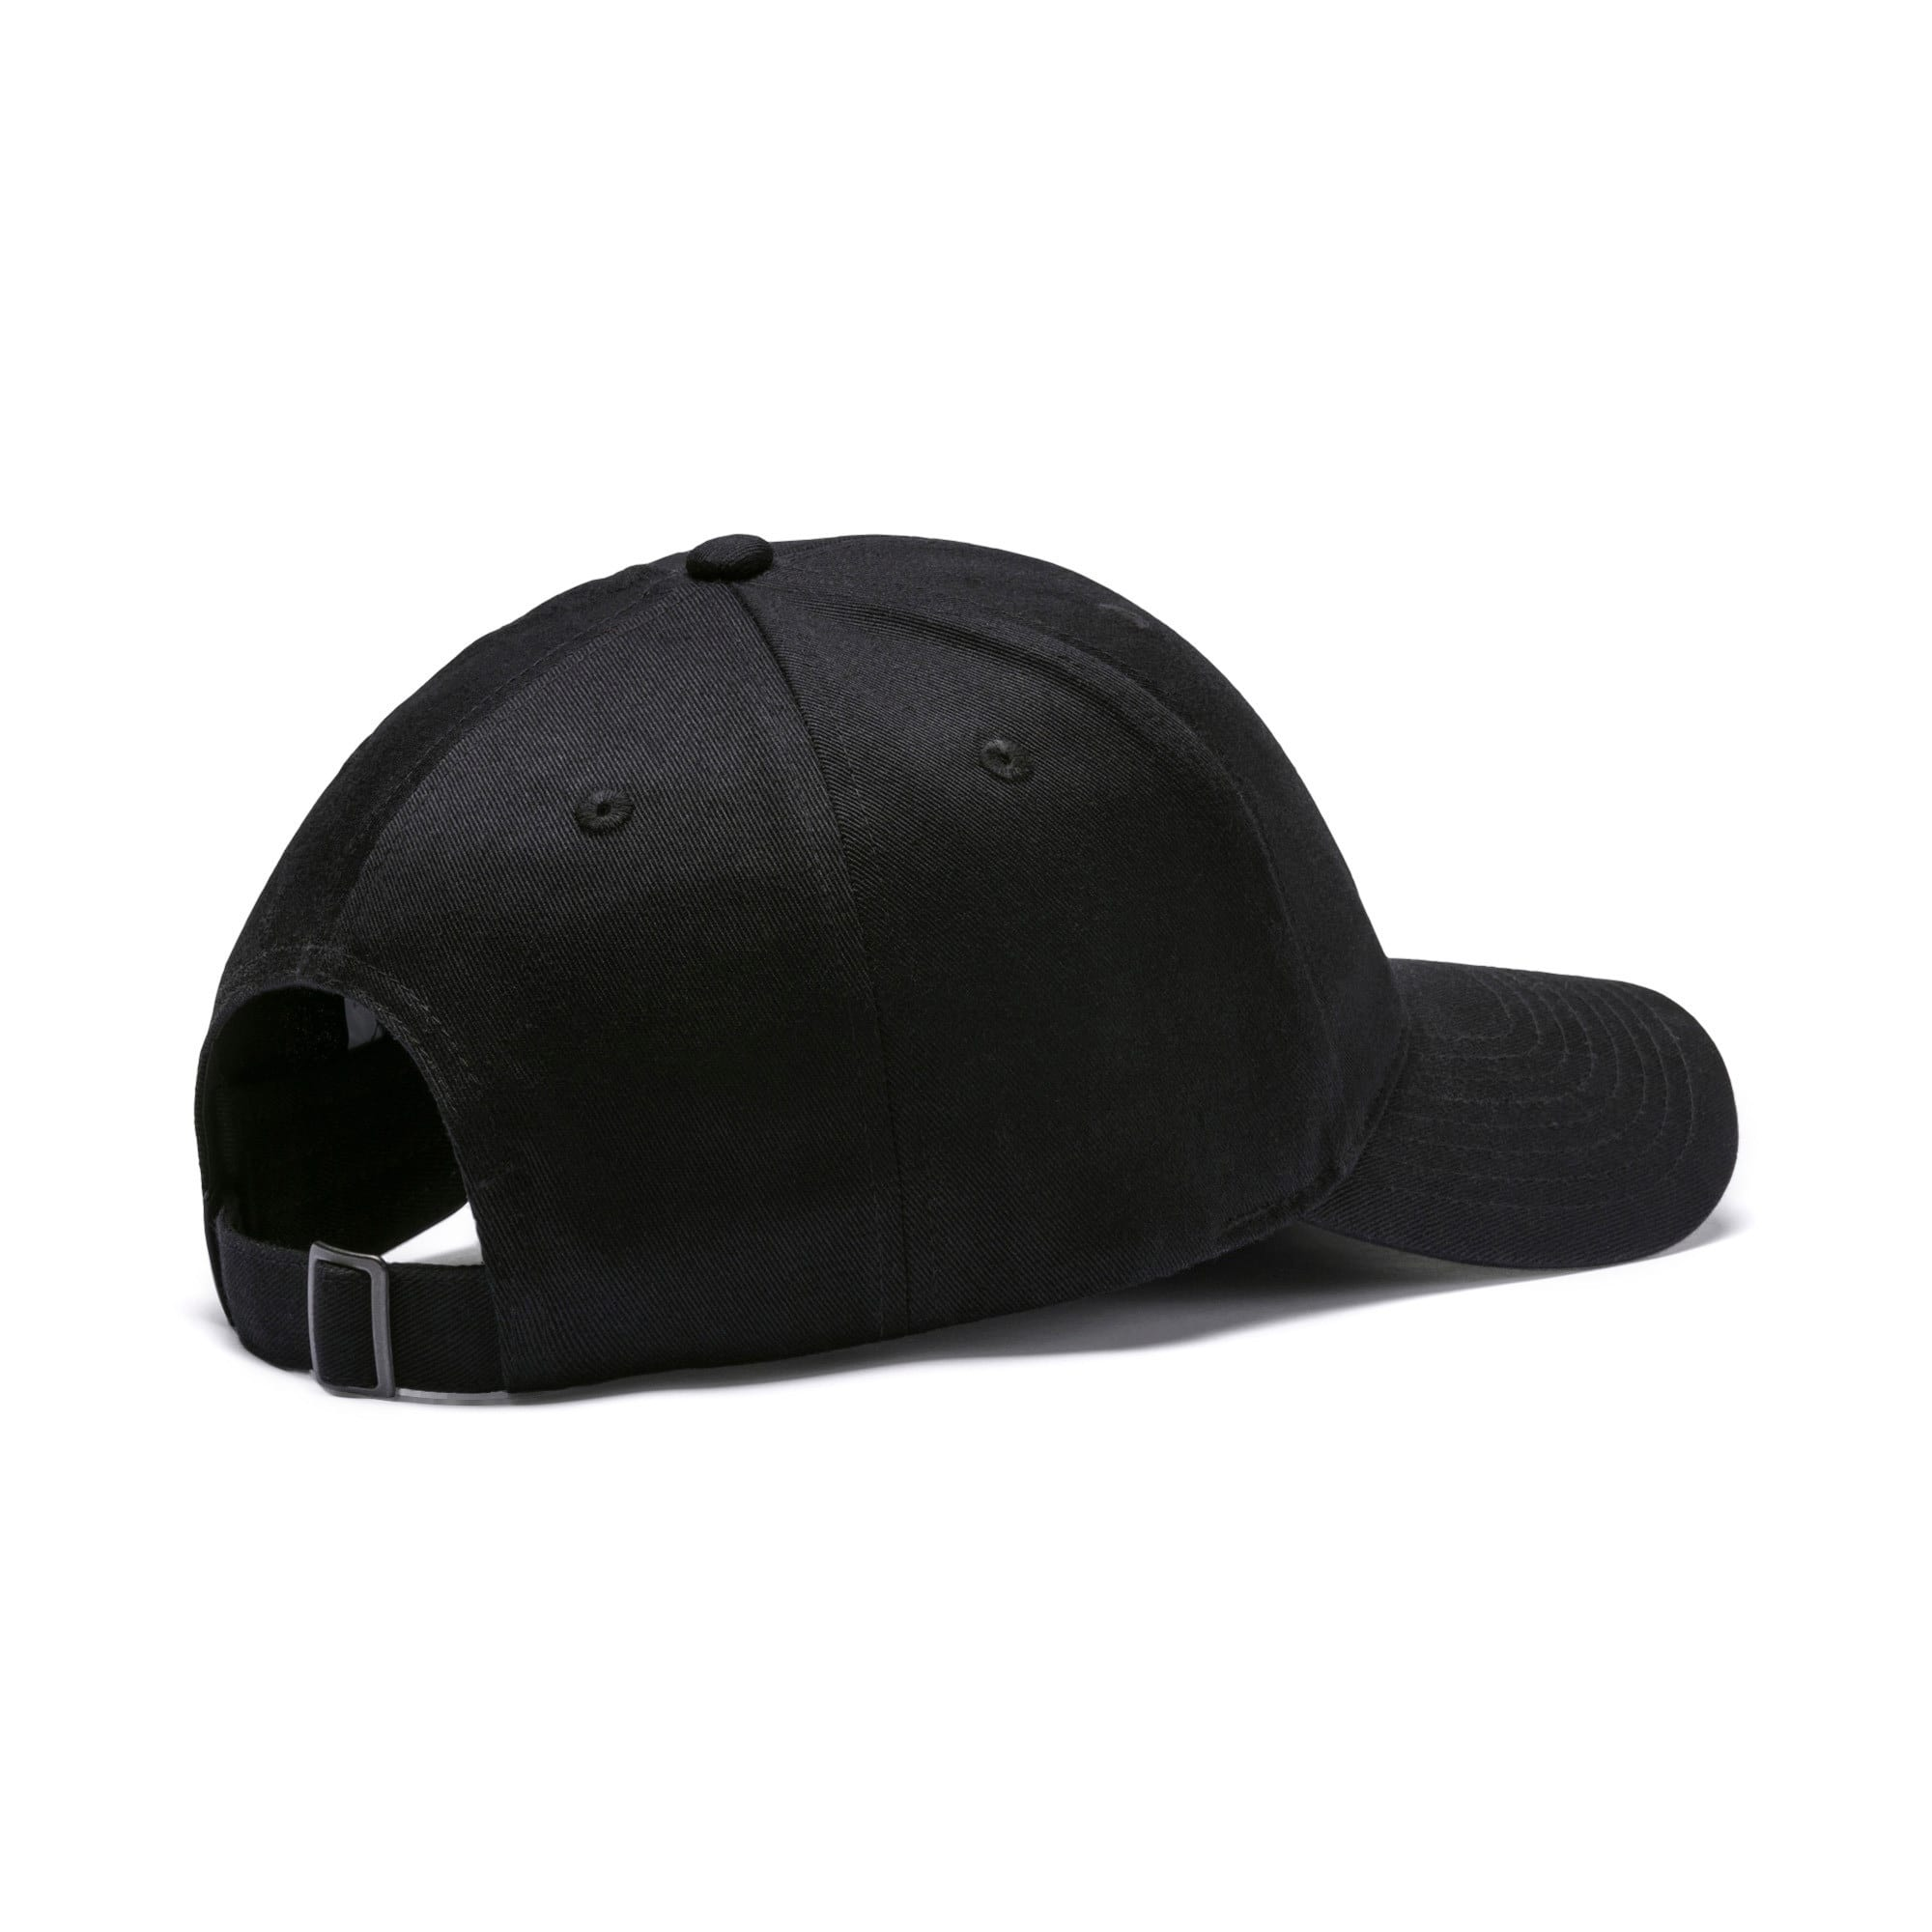 Thumbnail 4 of Archive baseballpet met logo, Puma Black, medium